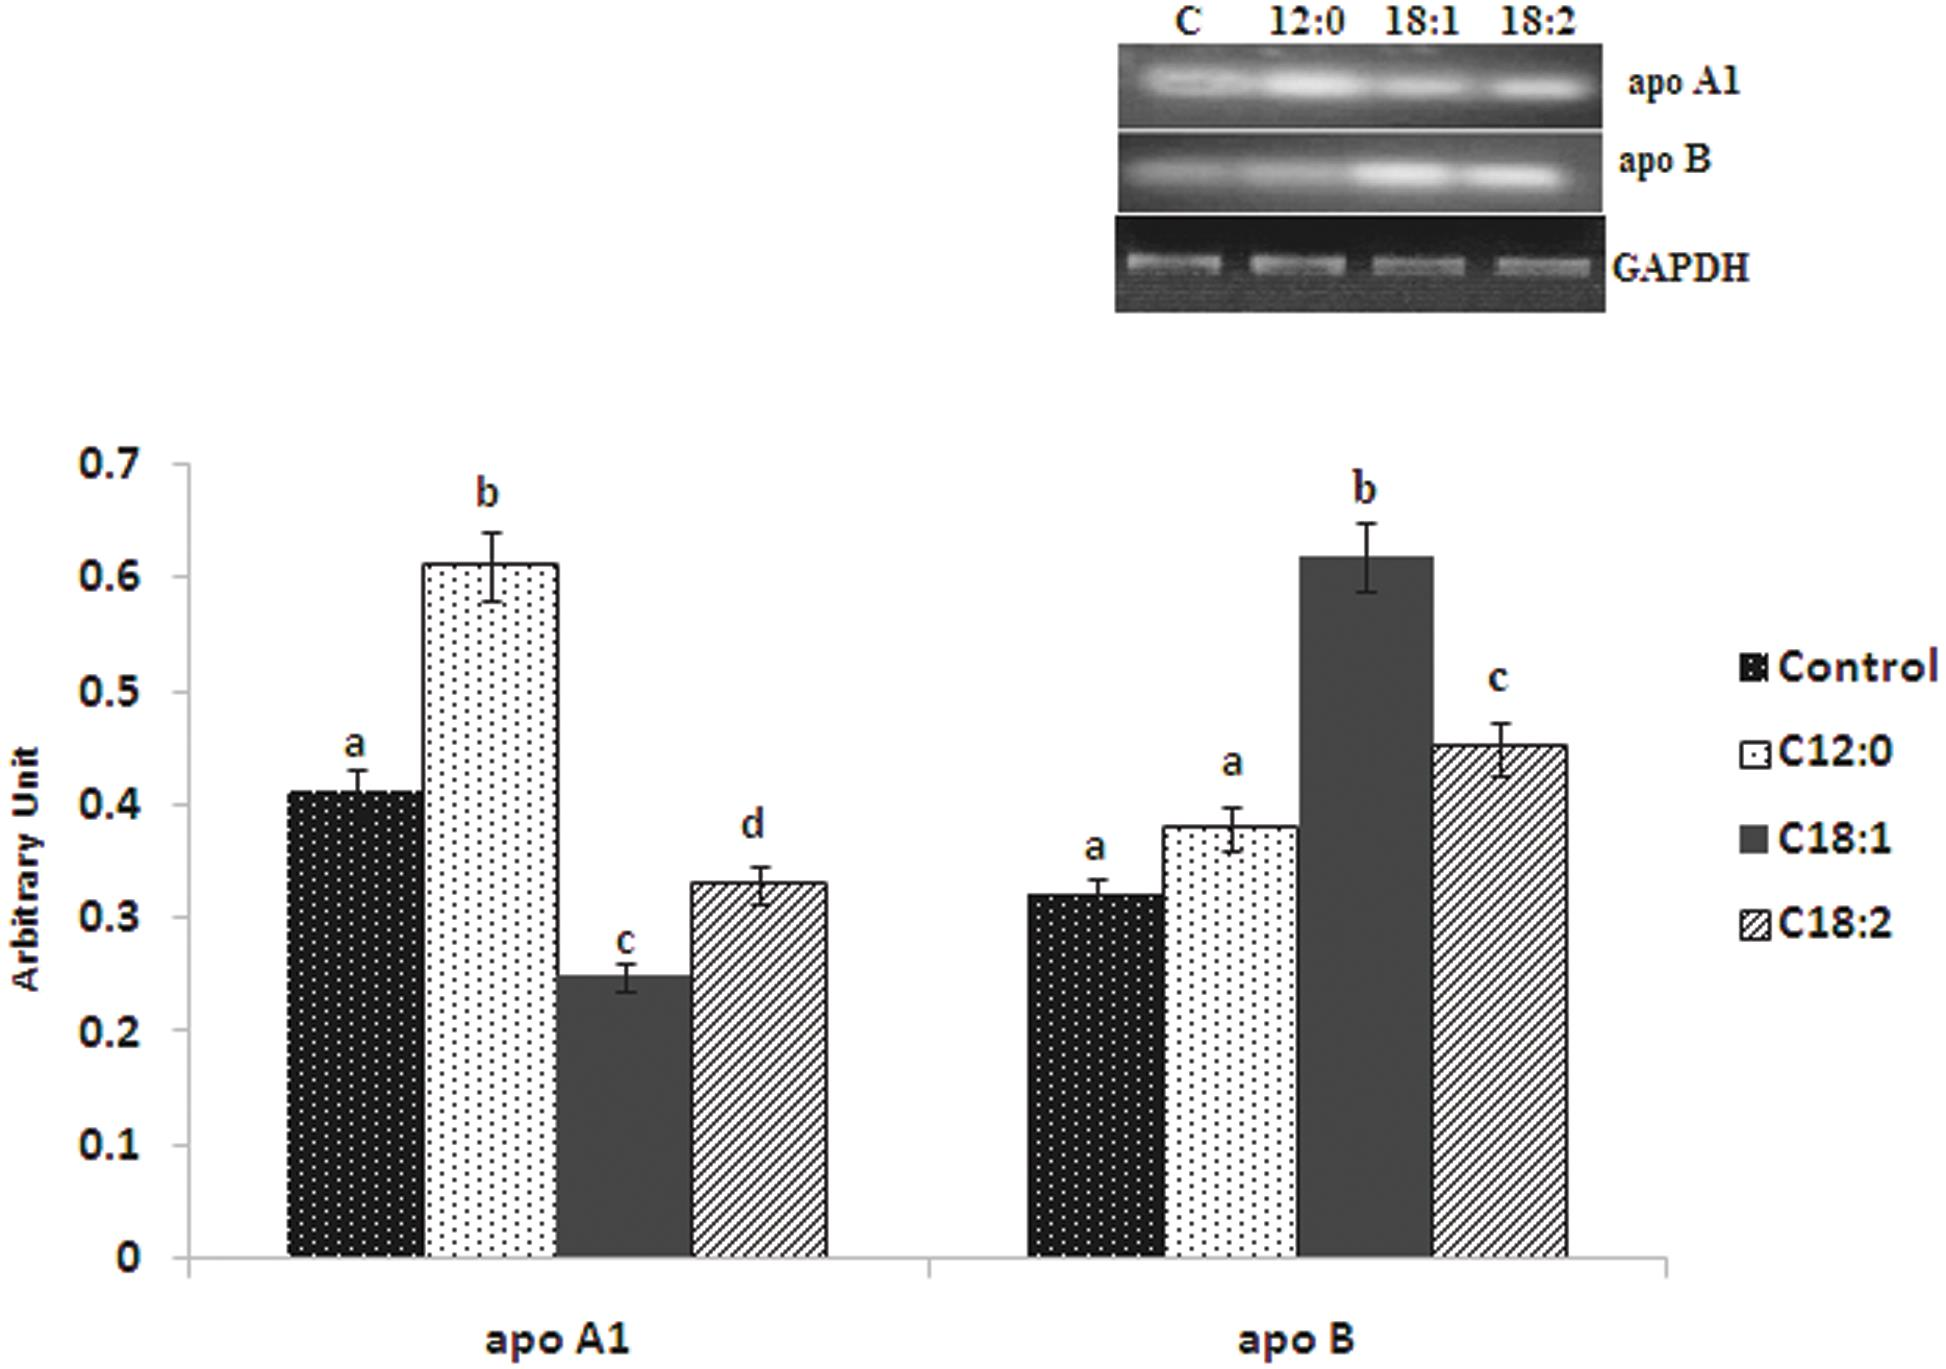 Effect of exogenous fatty acids on the mRNA expression of apolipoproteins in hepatocytes.